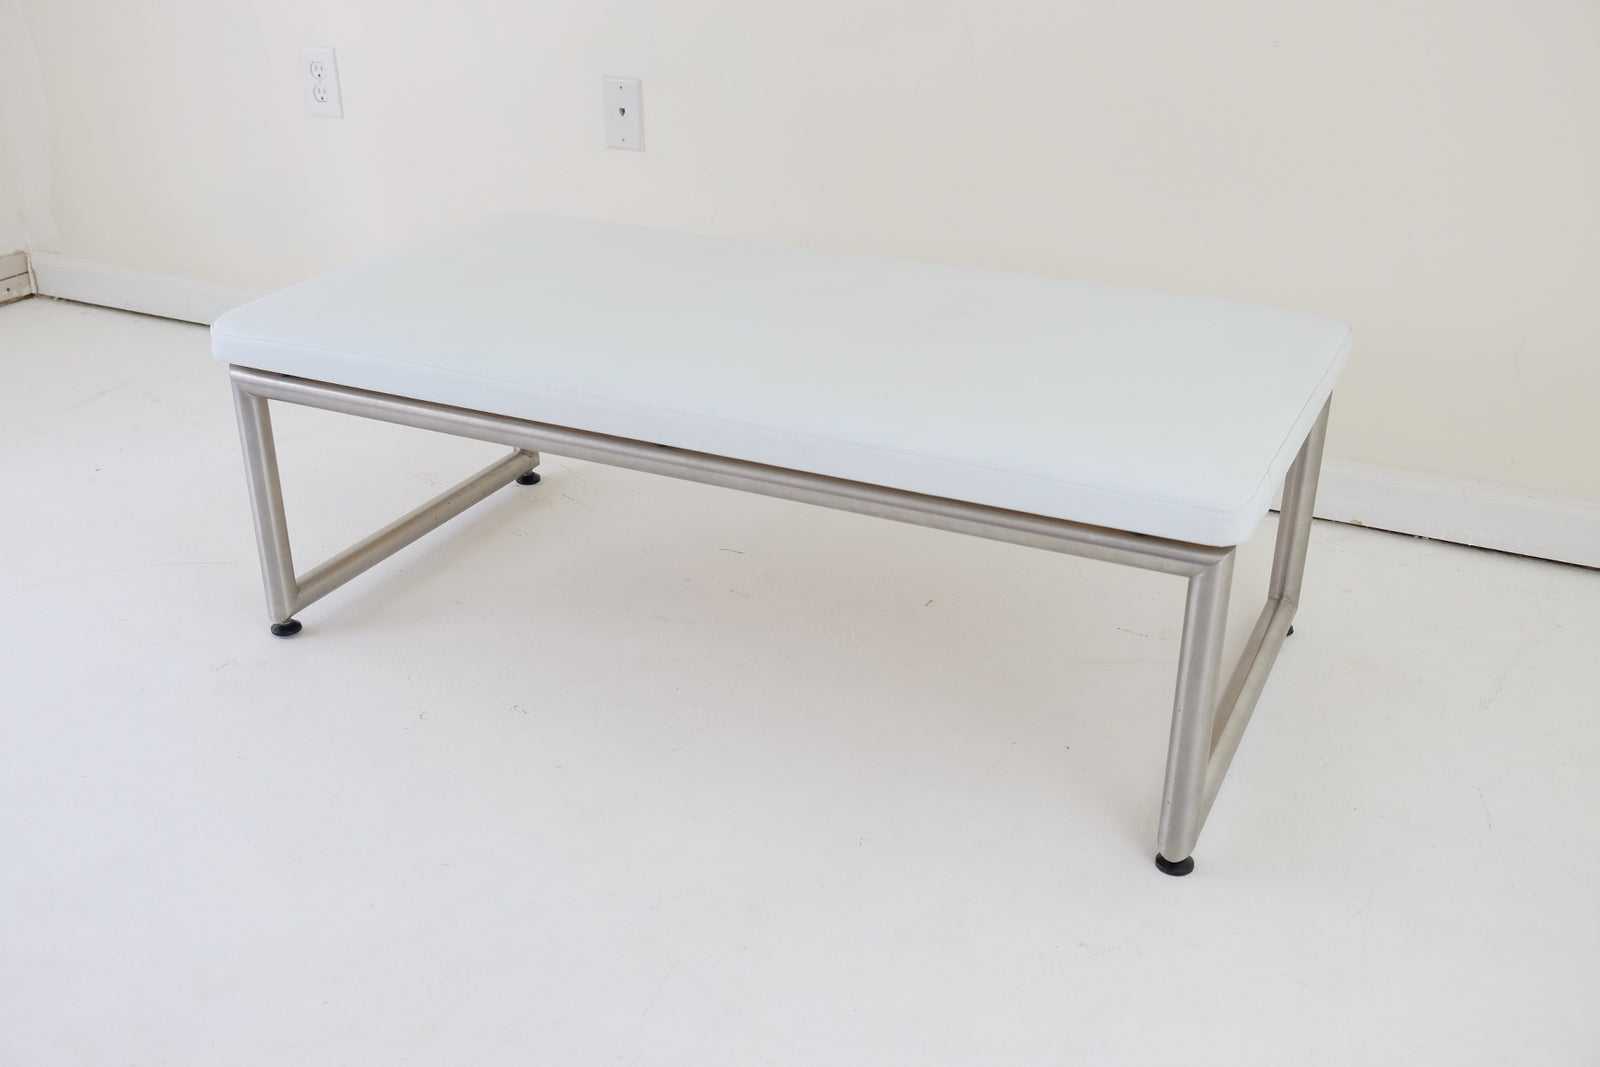 Henrik Tengler Stainless Steel Bench White Leather Upholstery